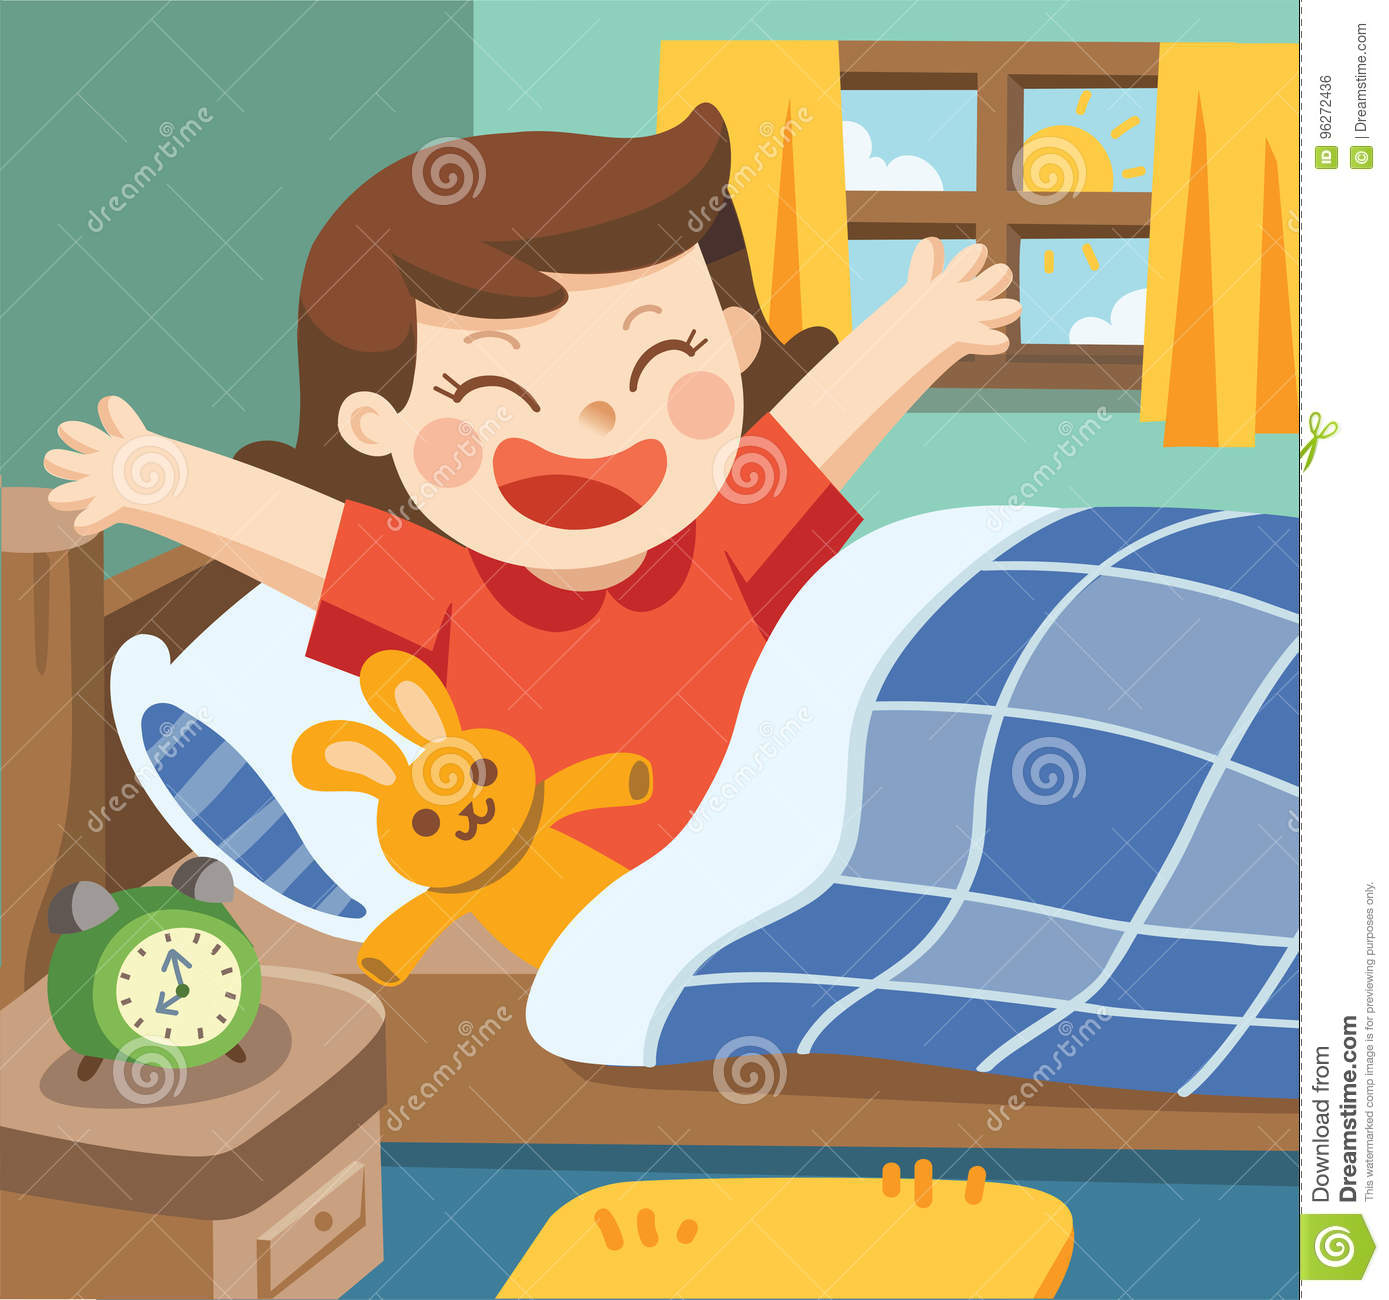 Wake up early in the morning clipart freeuse Wake Up Early In The Morning Clipart freeuse